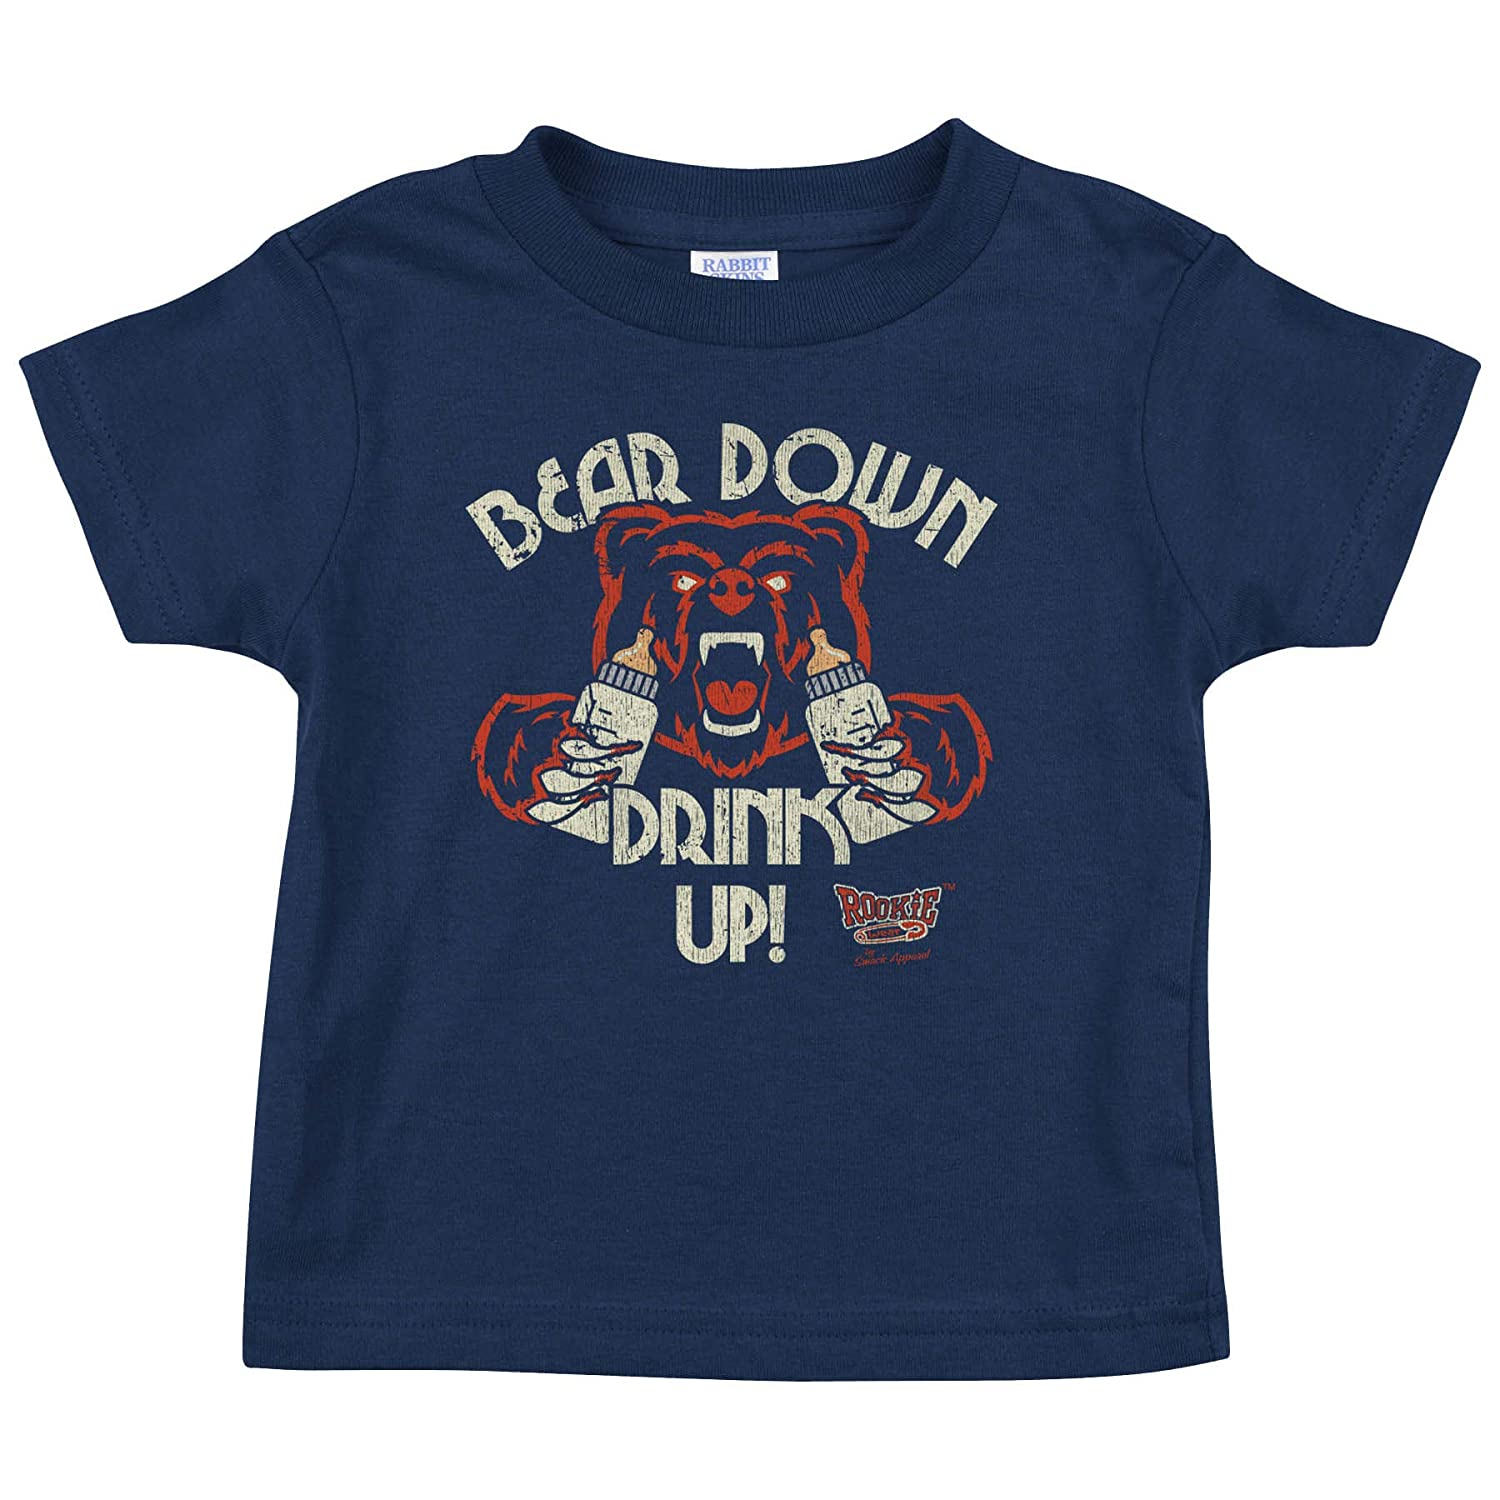 NB-4T Bear Down Drink Up Navy Onesie or Toddler Tee Rookie Wear by Smack Apparel Chicago Football Fans